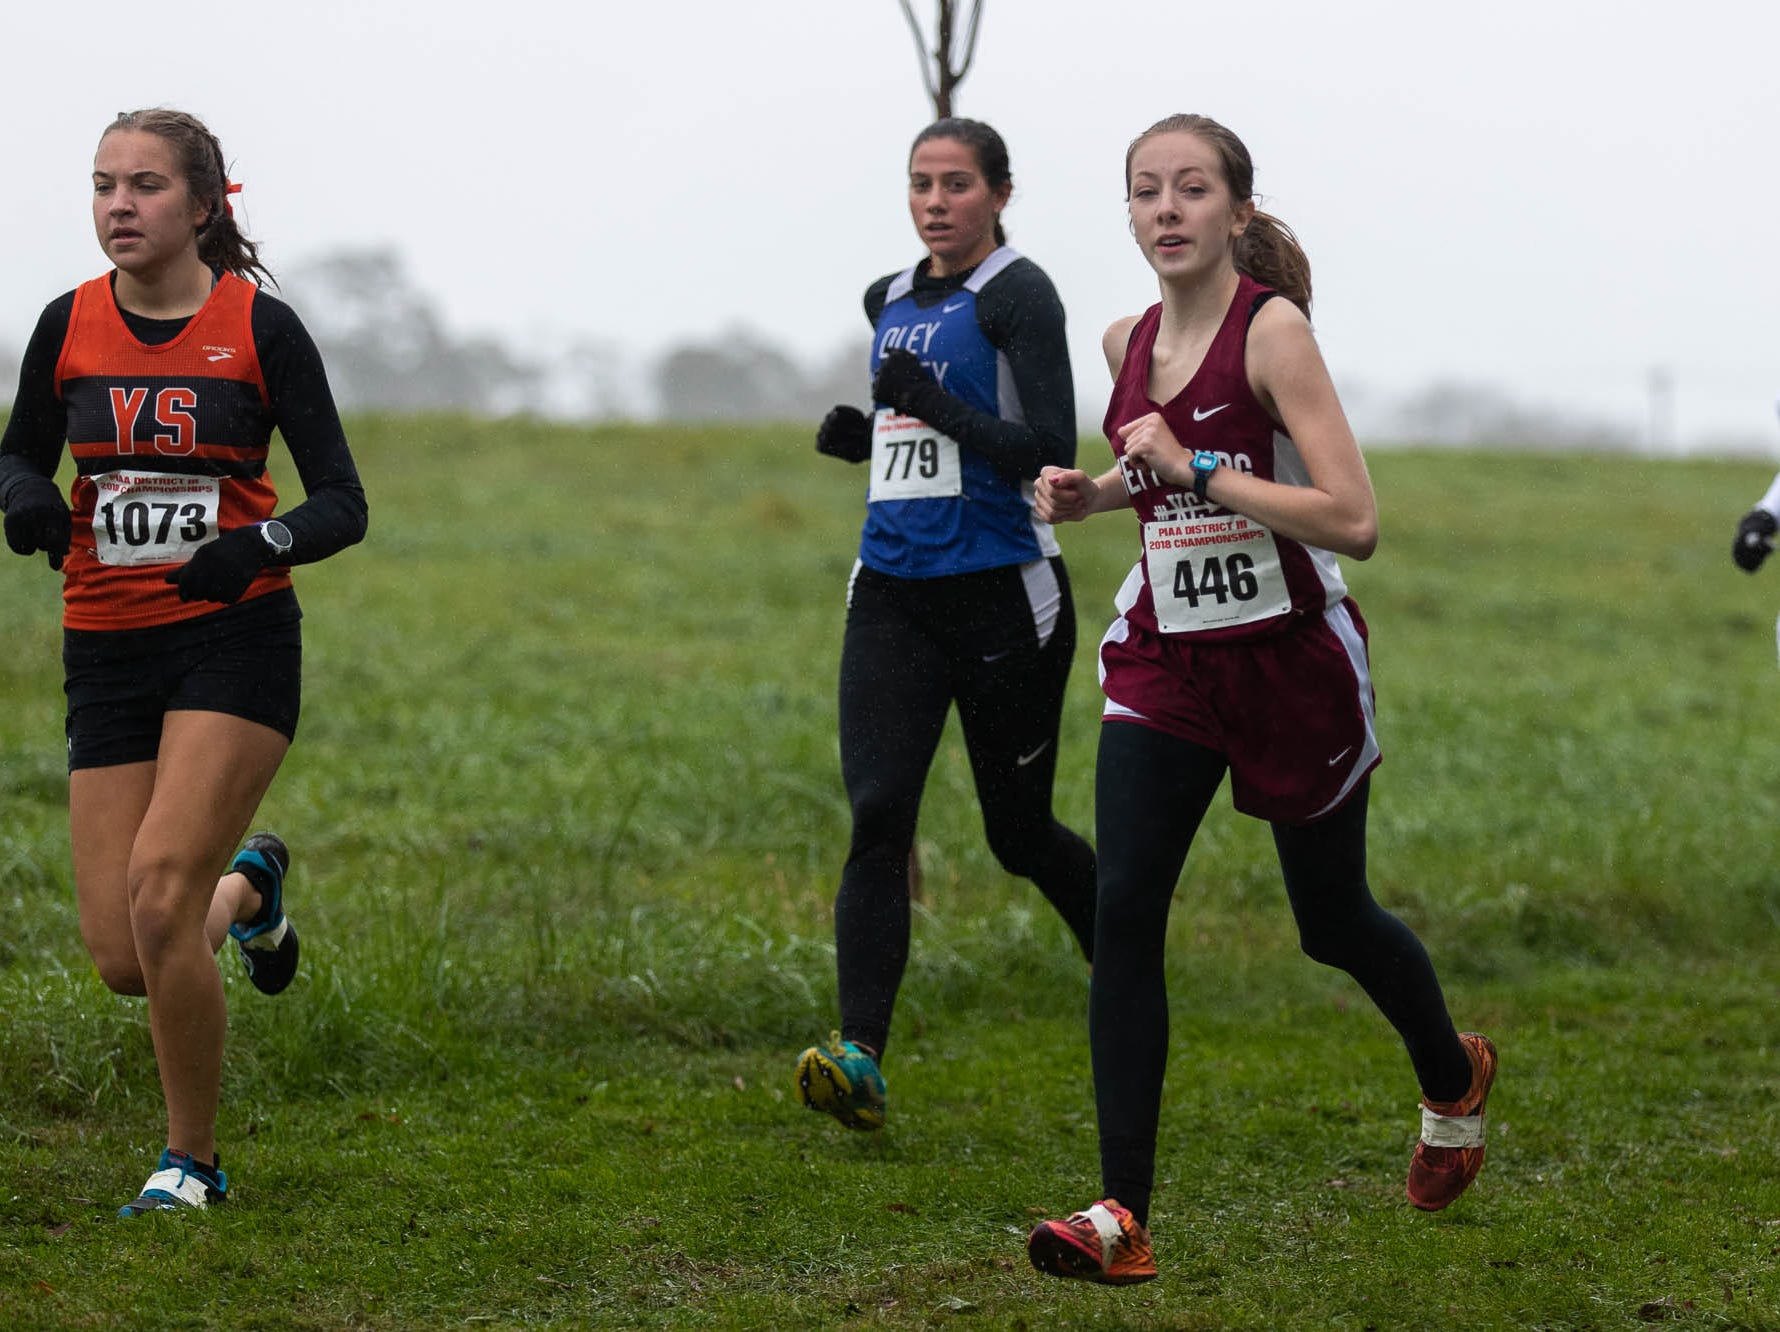 Gettysburg's Marrin Crist (446) races in the Girls AA race during the PIAA District III Cross Country Championship, Saturday, Oct. 27, 2018, at Big Spring High School in Newville.